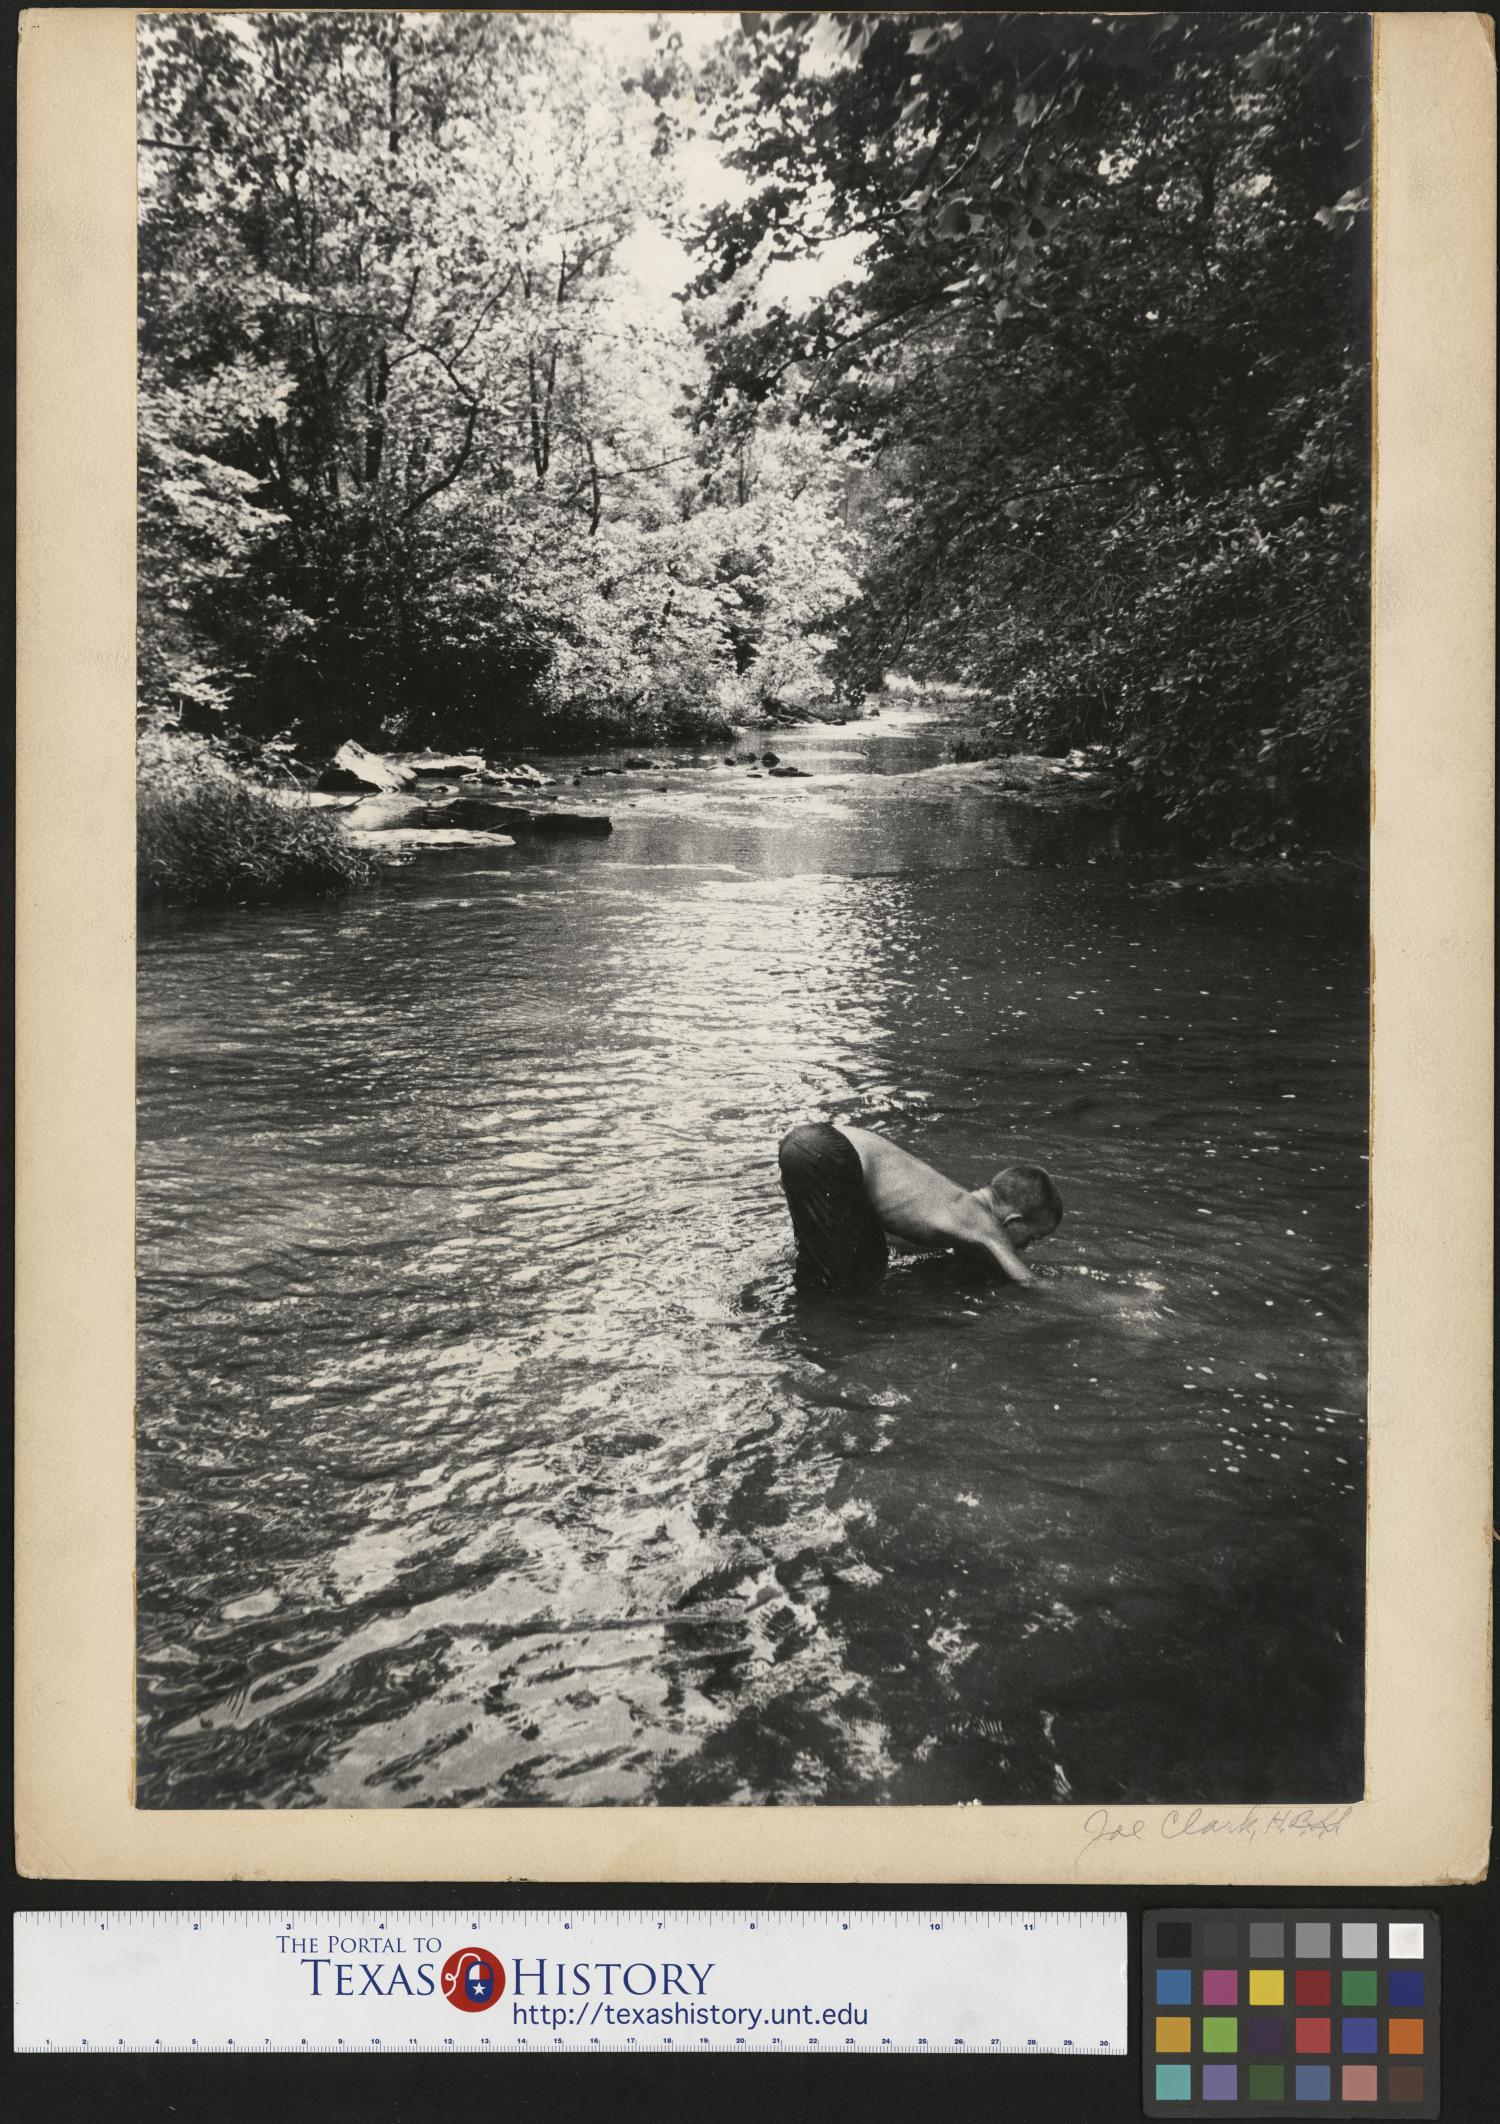 """[Mountain Boy Fishing], Photograph of Jimmy Powell, also known as """"Mountain Boy,"""" bent over in a creek in Cumberland Gap, Tennessee. In the image, Powell, shirtless, is fishing in a creek with trees lining all sides of the creek. Photographs from this series were featured in Life Magazine and titled """"Mountain Boy."""","""